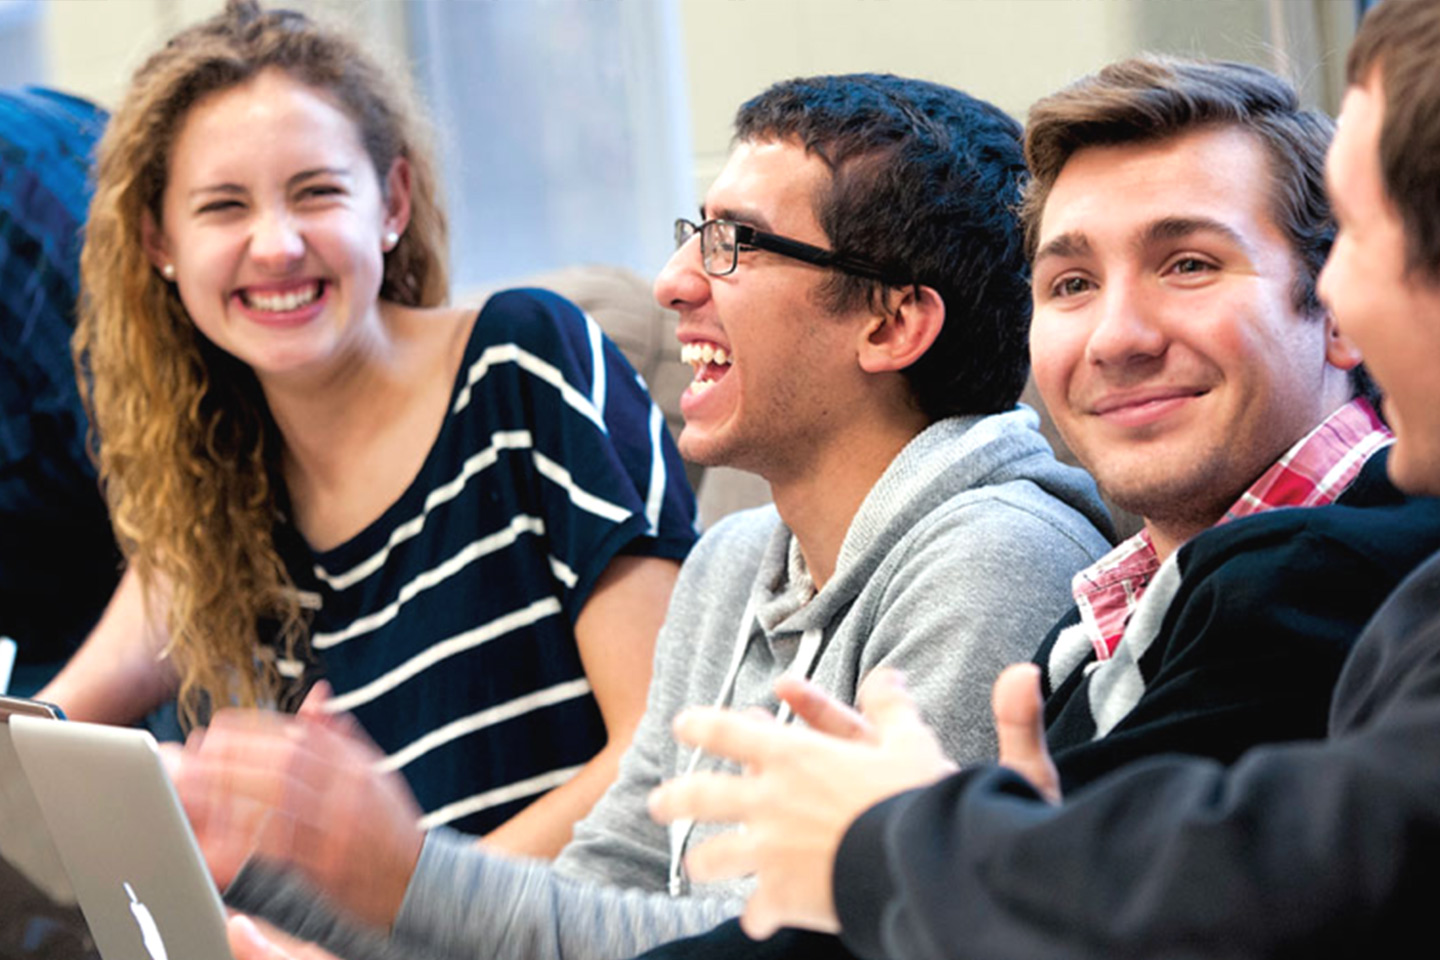 A group of students laughing with each other in class